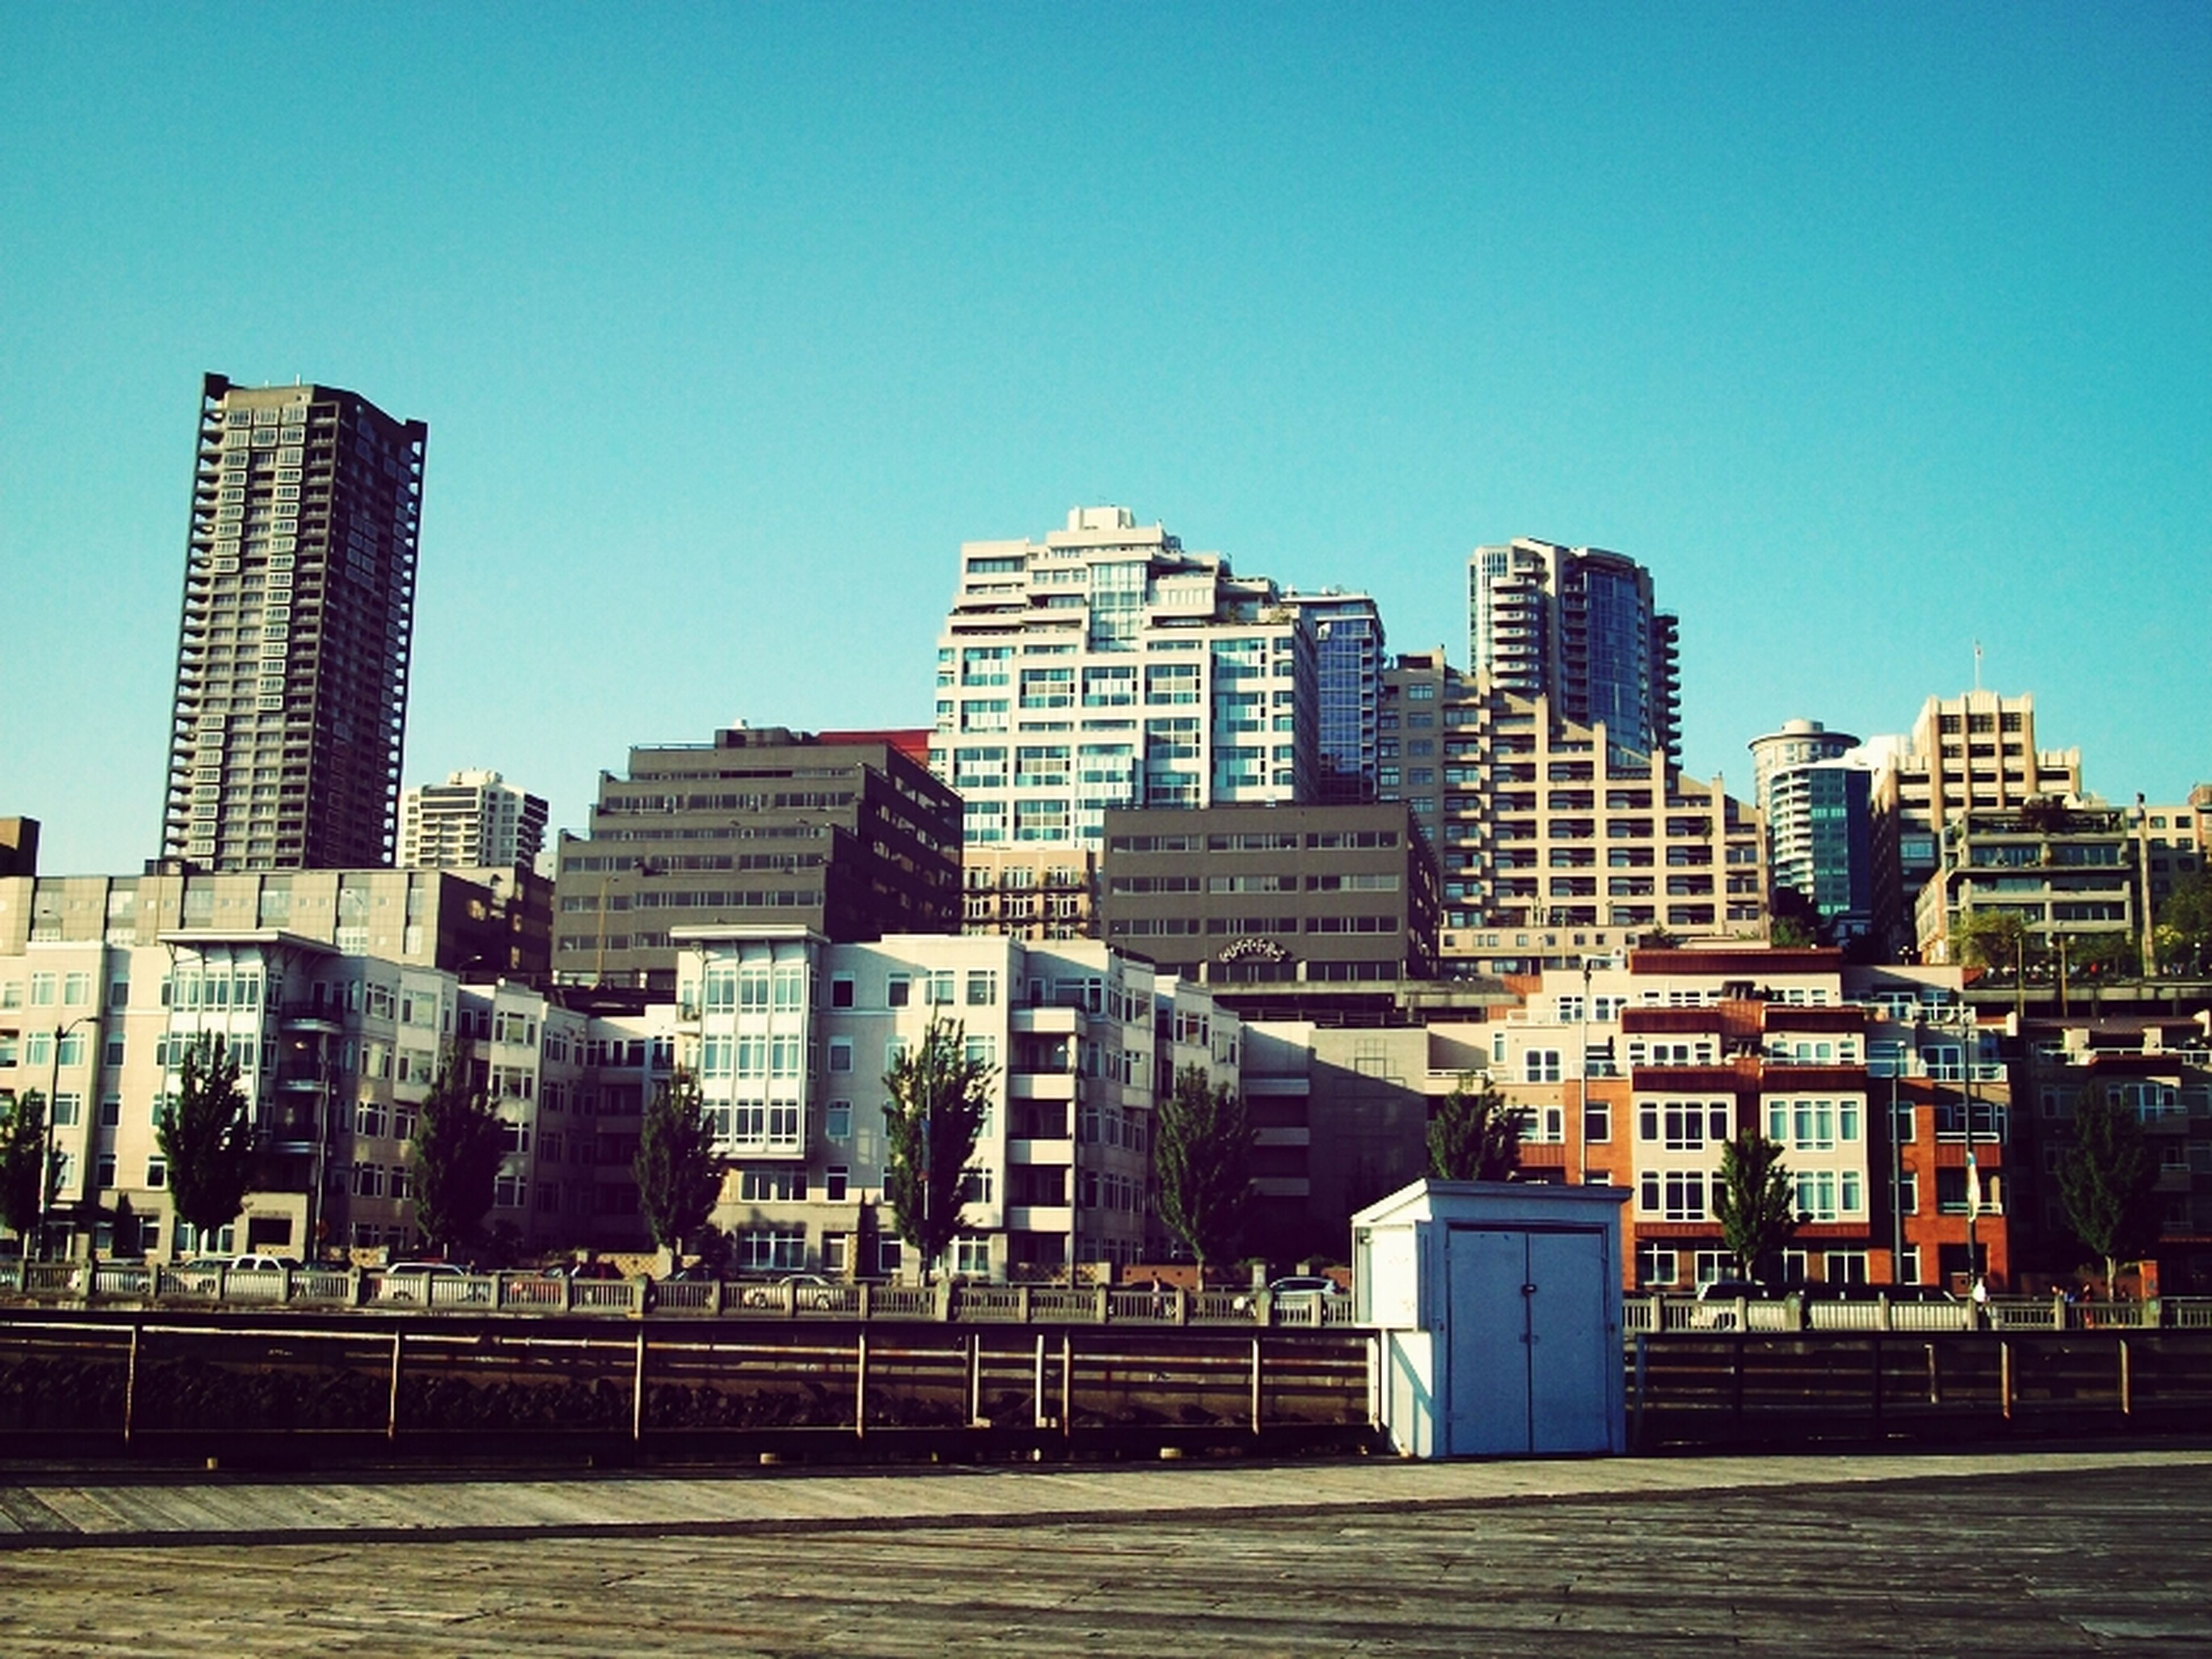 building exterior, architecture, built structure, clear sky, city, blue, copy space, cityscape, residential structure, residential building, building, residential district, outdoors, sunlight, sky, city life, day, no people, skyscraper, house